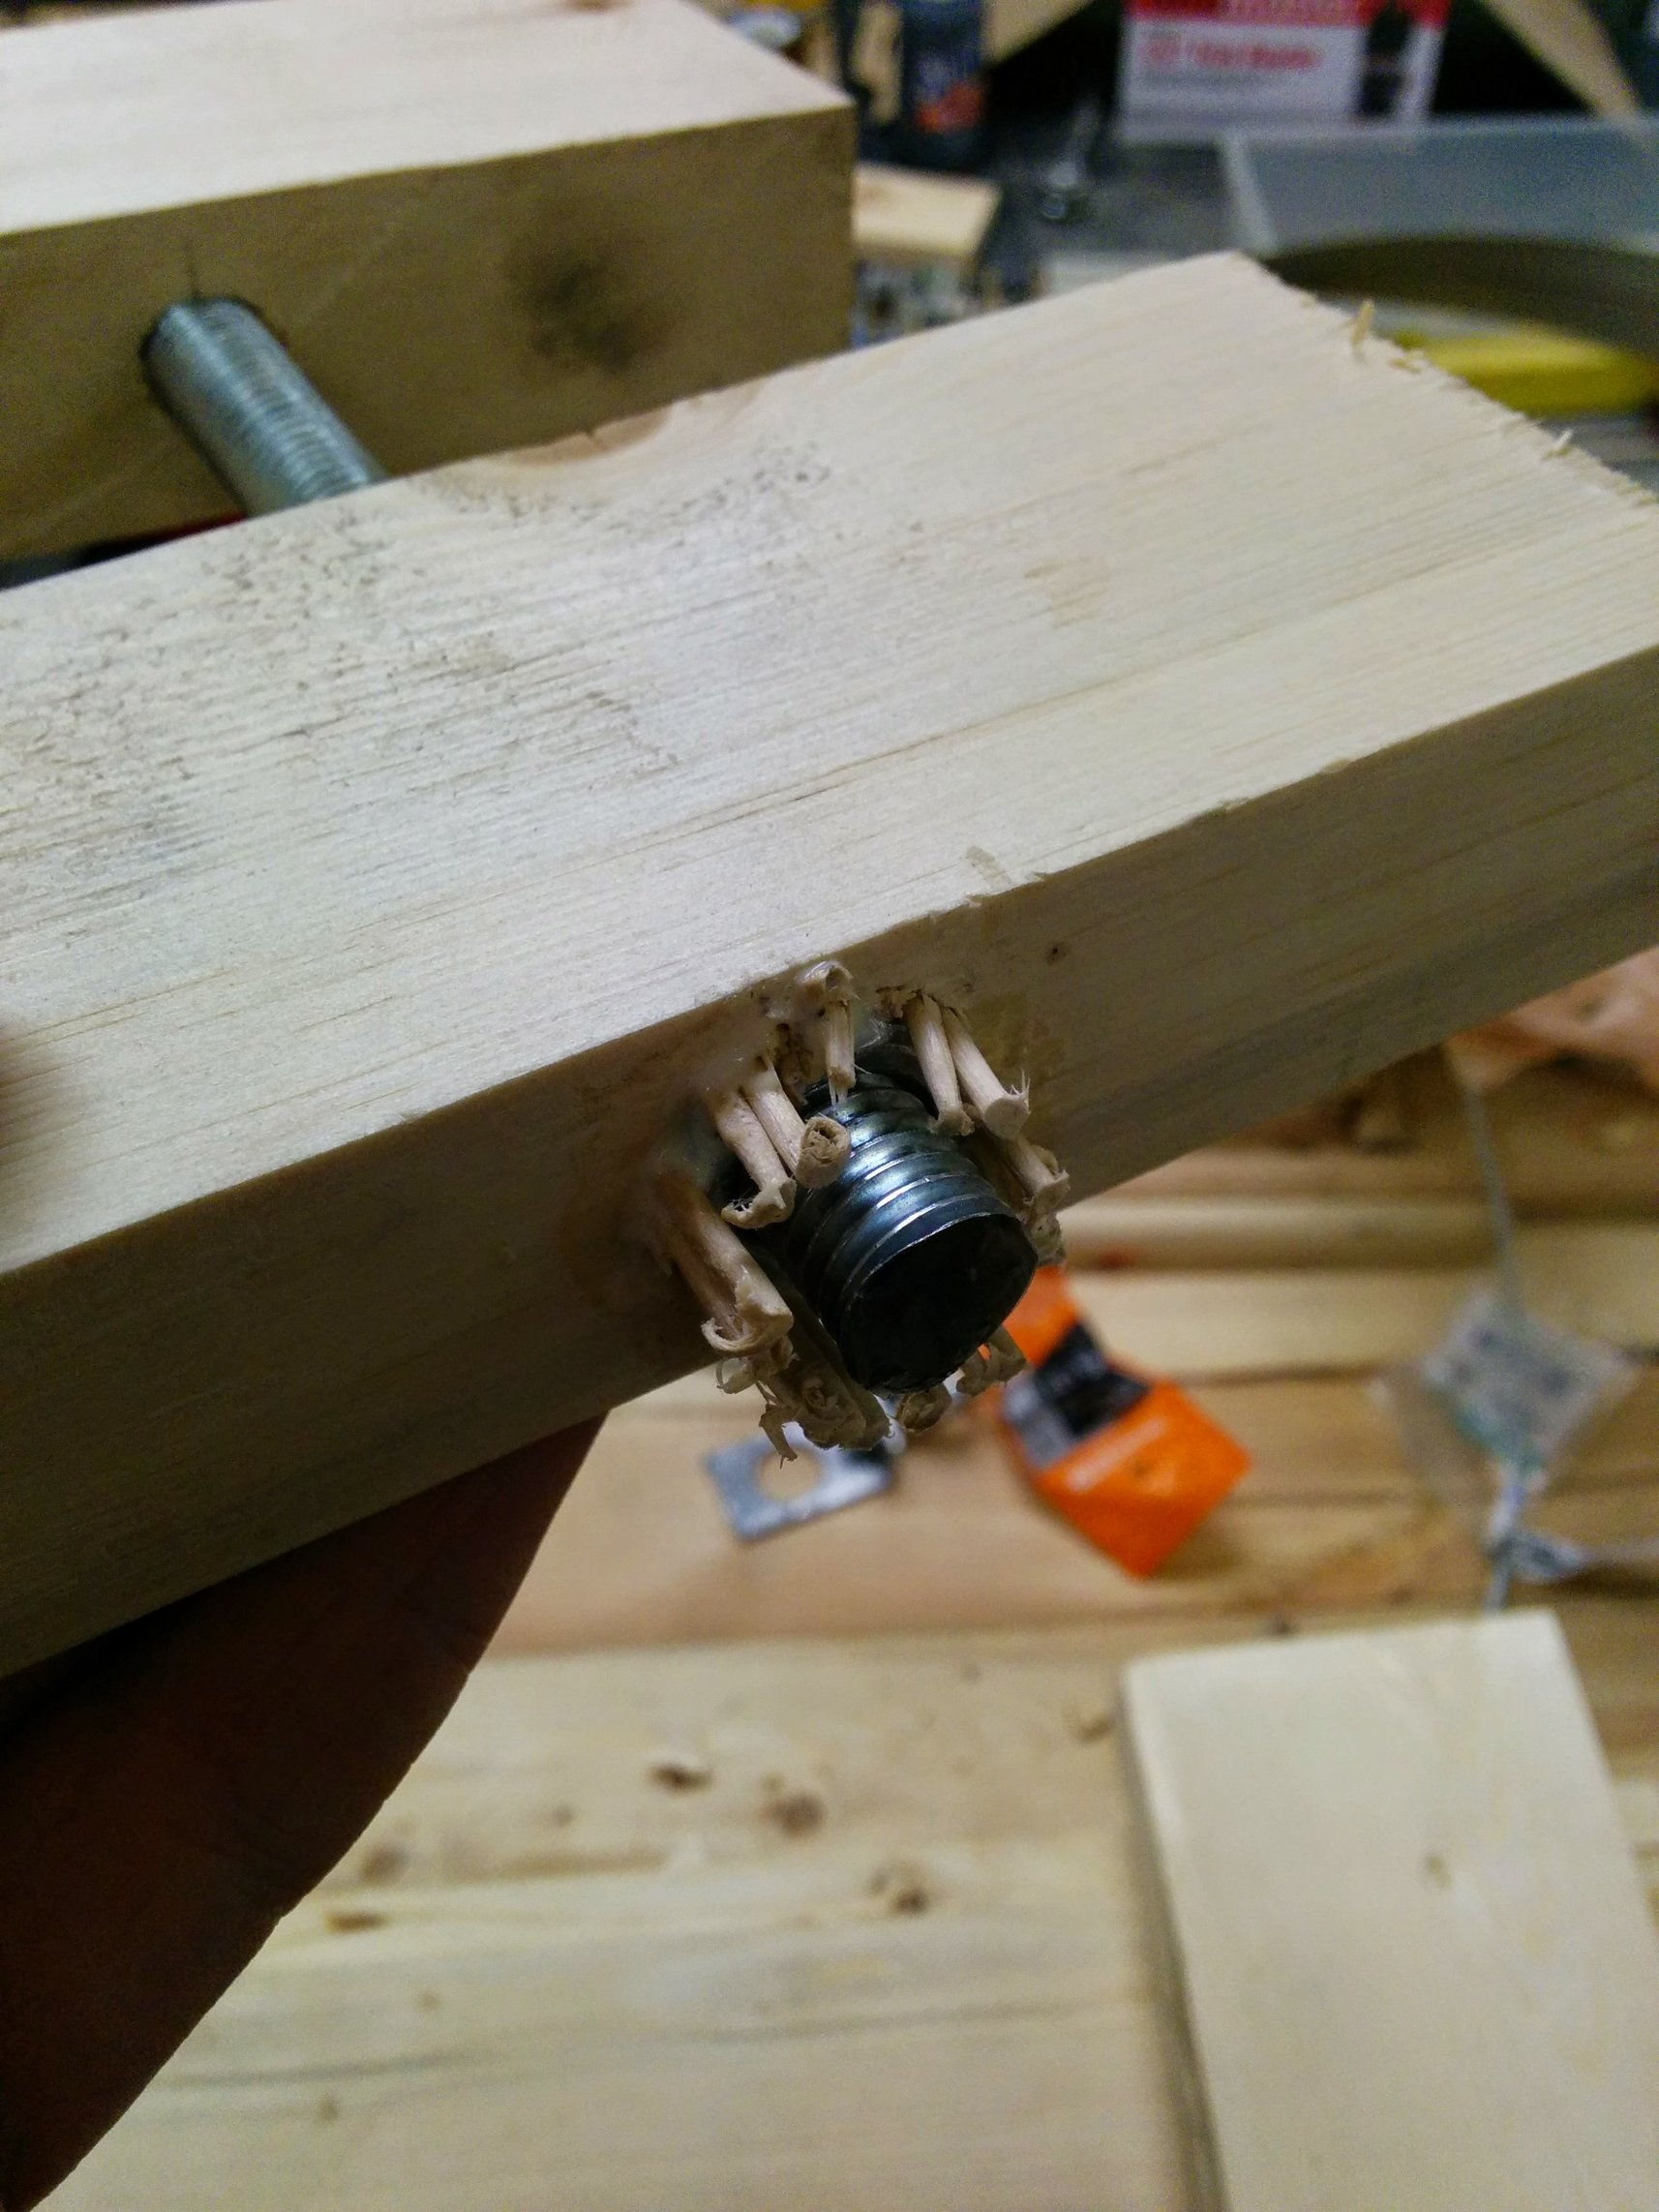 "Cut a 1/2"" hole, then countersunk one end so I could put a 1"" long nut inside. Since I can't cut hexagonal holes, I just filled it with wood glue and toothpicks, this has worked brilliantly so far. Another likely better way to do this (or so I've been told) is to cut a hole that's smaller than the nut, then use a washer to pull the nut into the hole."